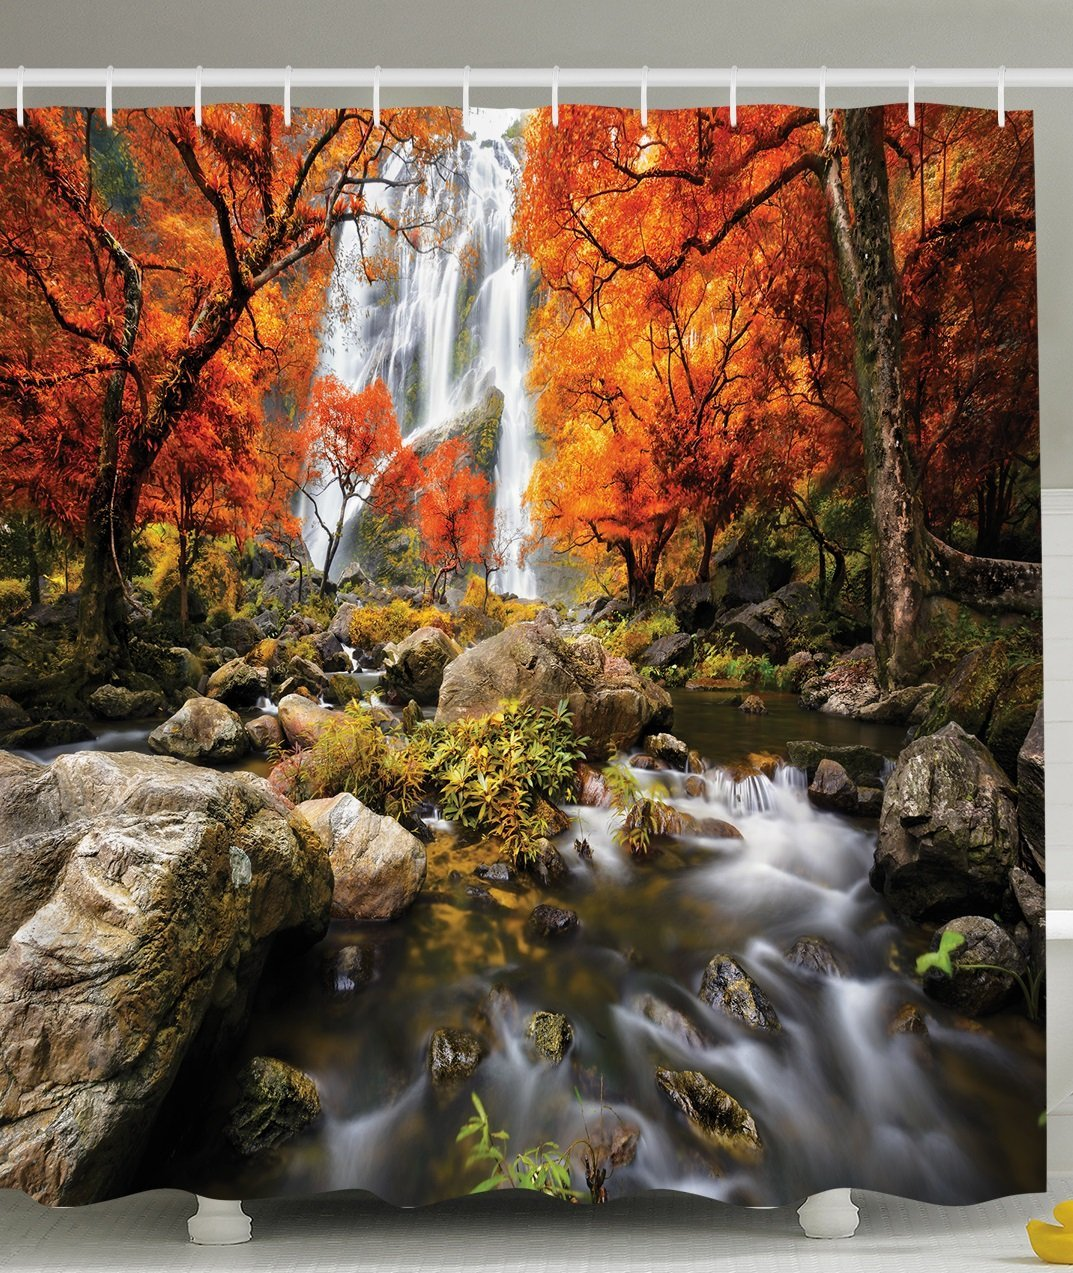 Ambesonne Jungle Shower Curtain Forest Decor by, Trees Decor Scenic Thai Waterfall and River Park in the Autumn, Polyester Fabric Bathroom Set with Hooks